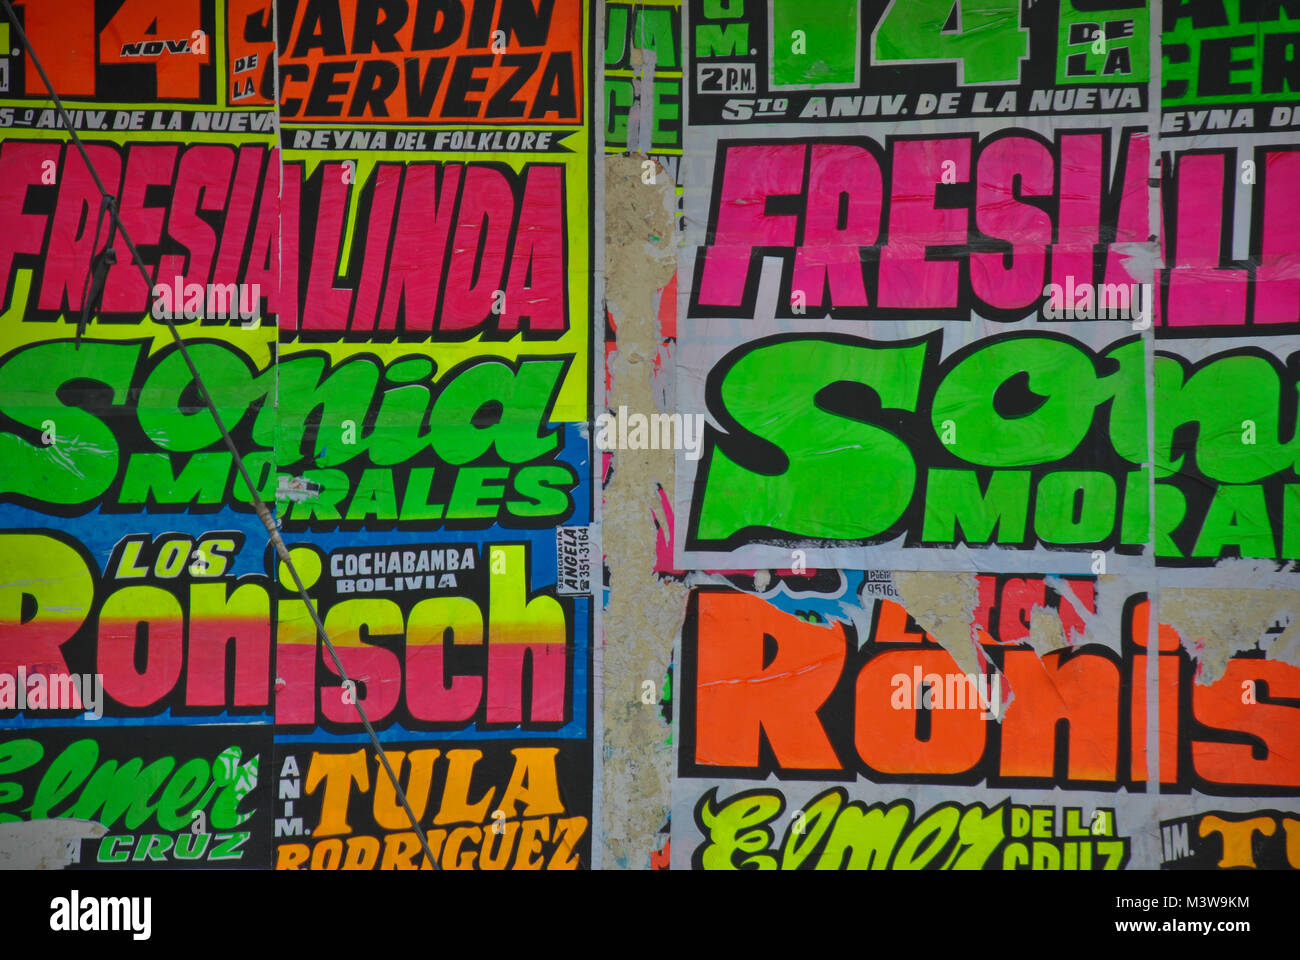 Colorful neon posters advertising the artists playing at traditional music nights in Peru - Stock Image